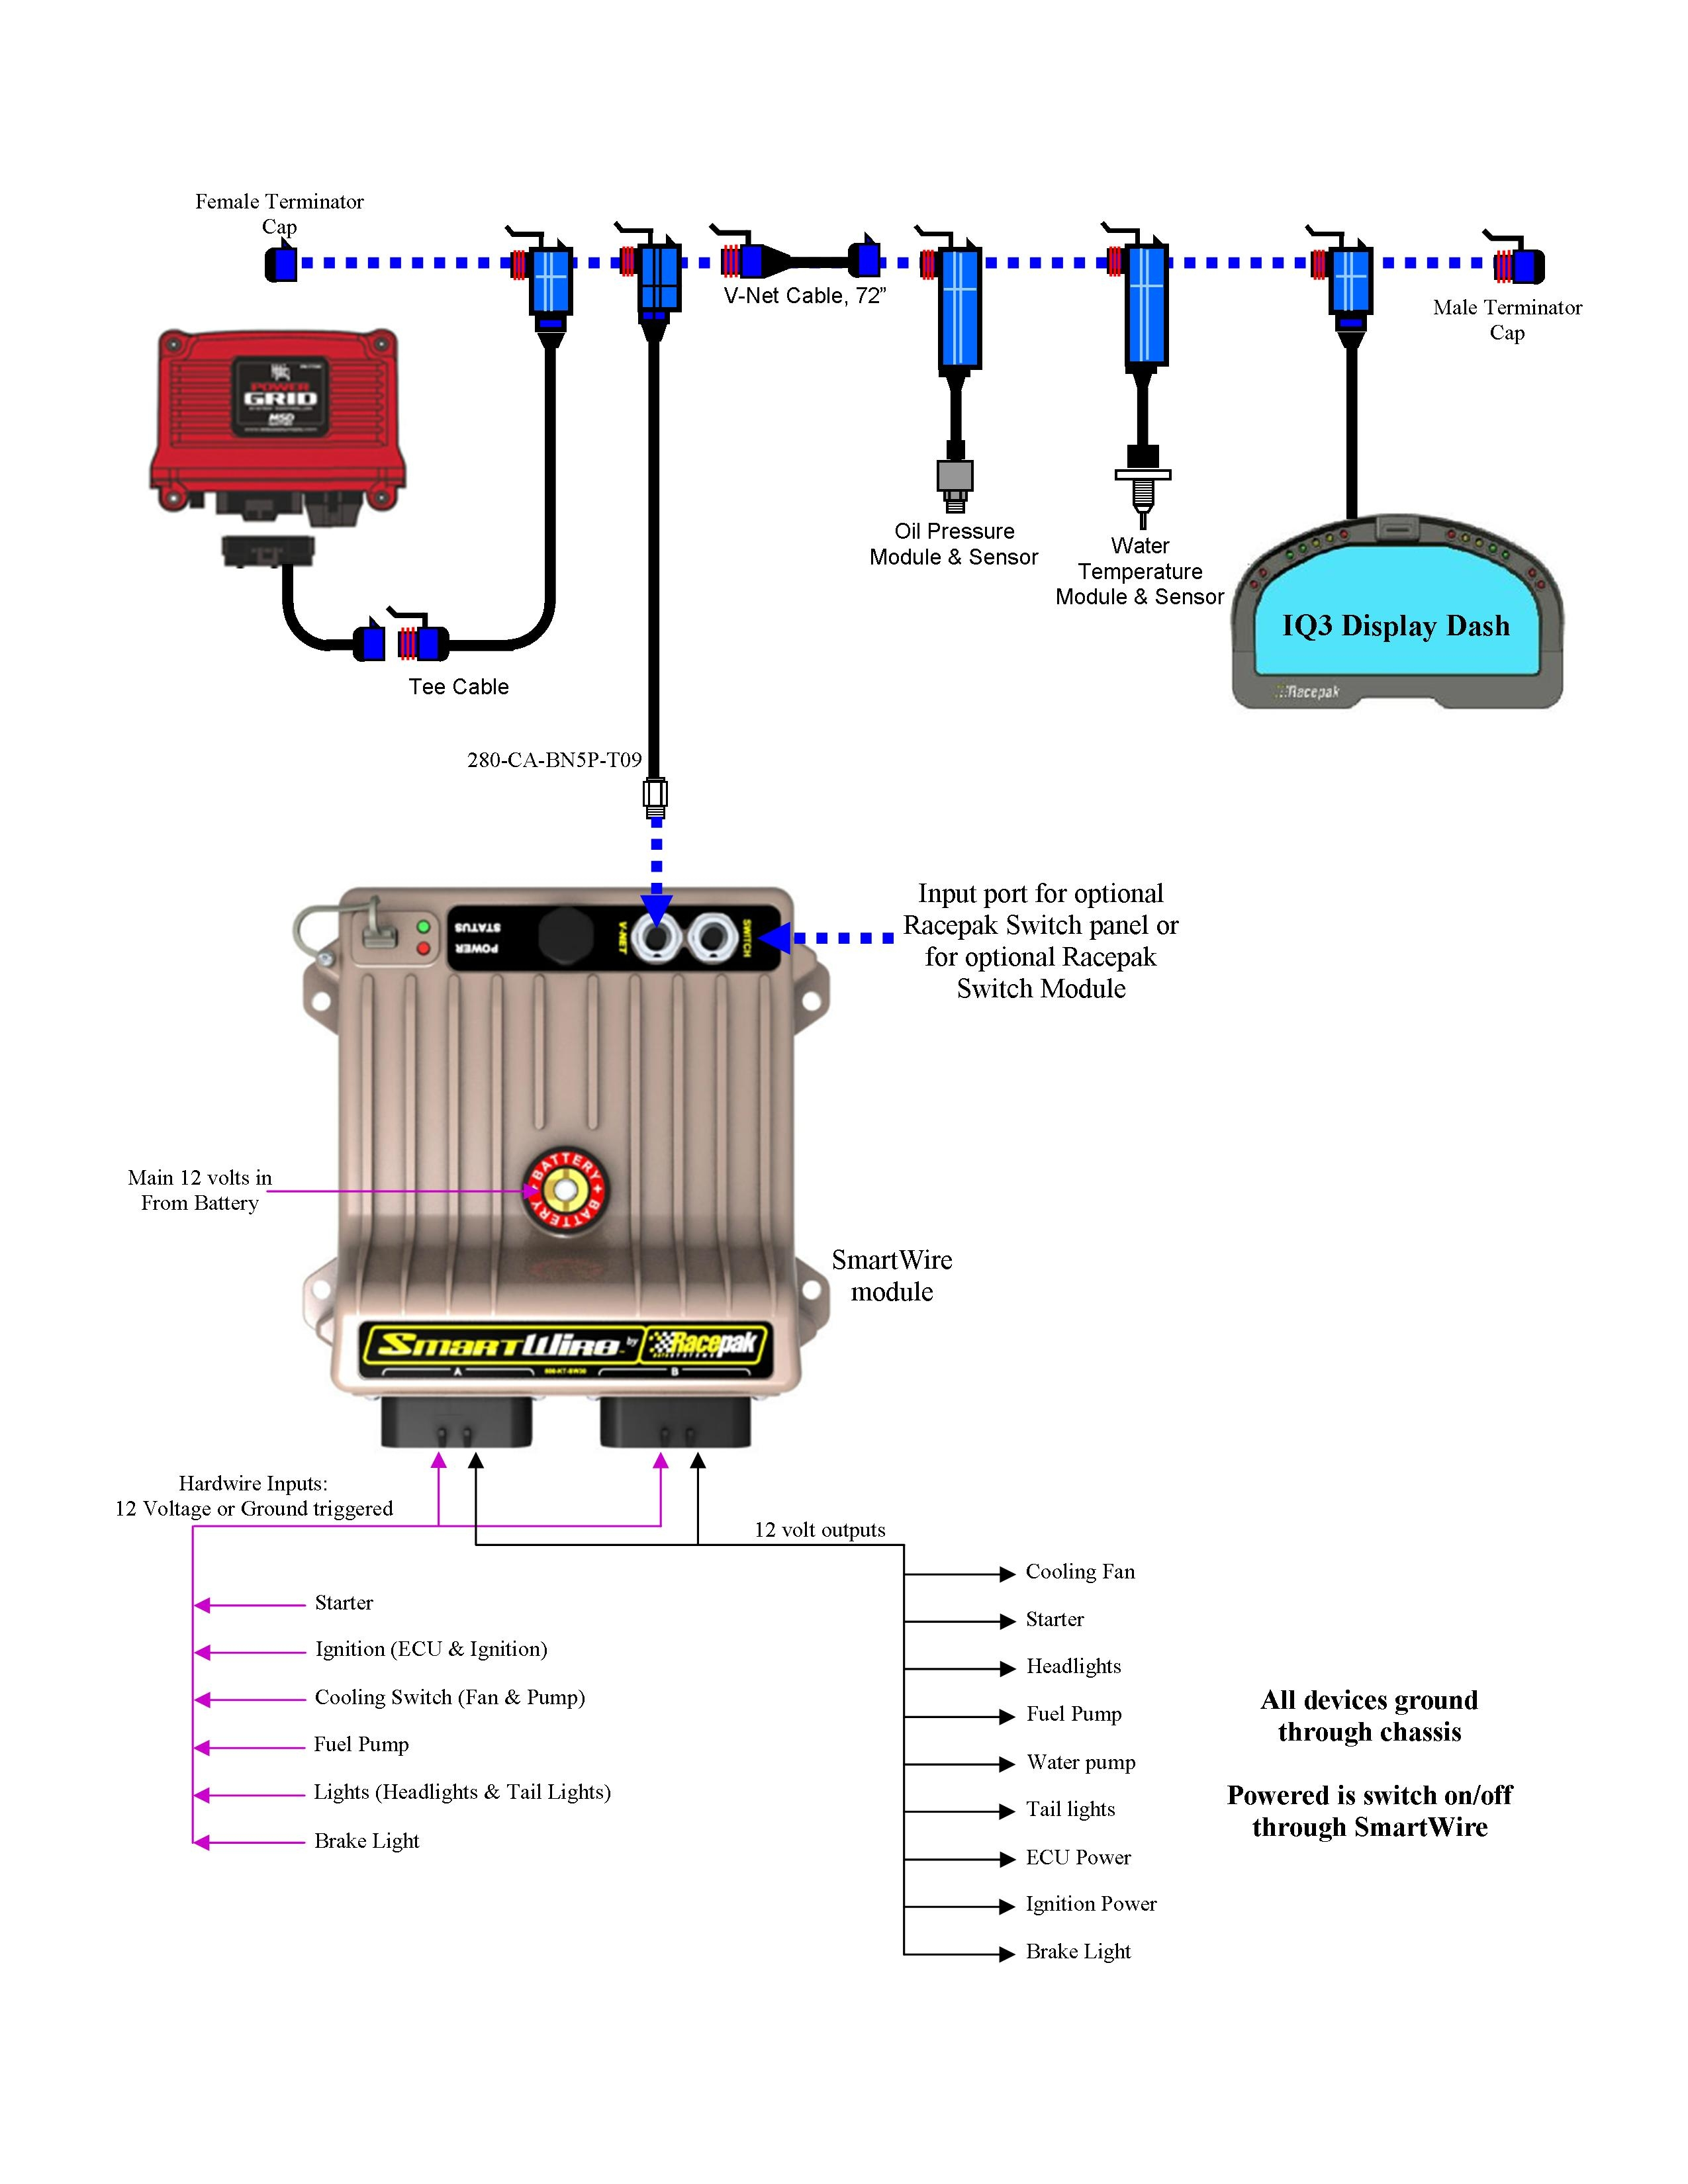 MSD Smartwire racepak wiring diagram msd 7al wiring \u2022 wiring diagrams j squared co Terminator Time Loop Diagram at reclaimingppi.co